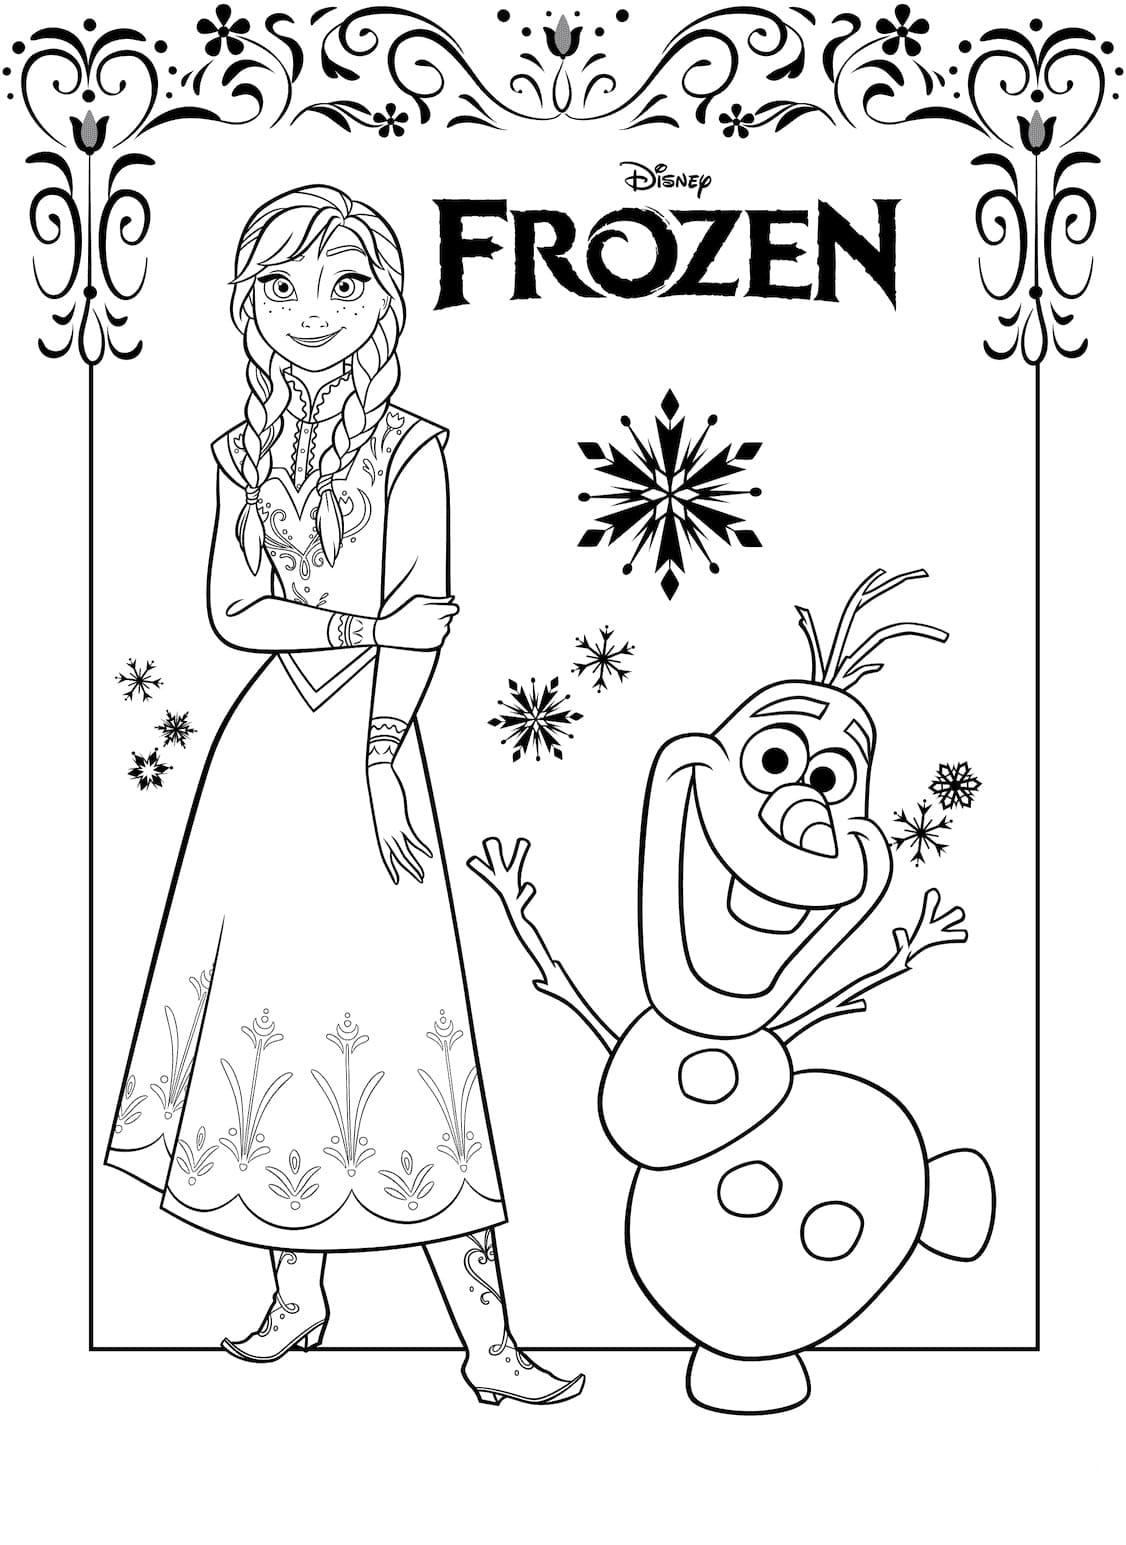 coloring pictures of frozen characters frozen coloring pages 2 100 images with your favorite characters of frozen pictures coloring